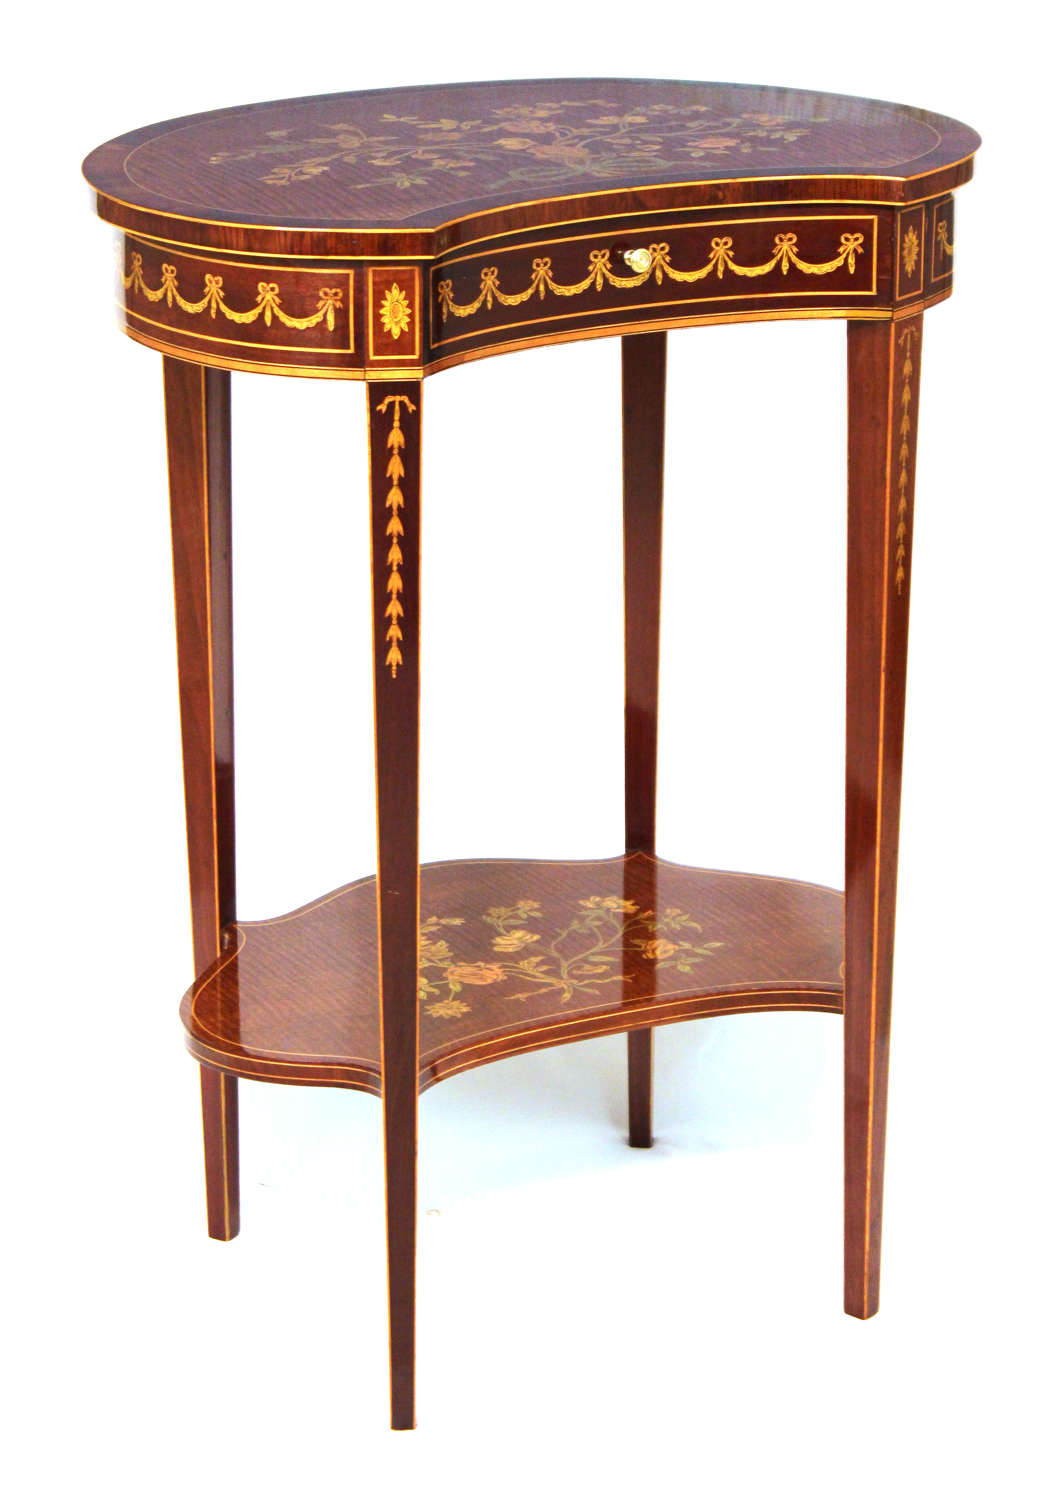 An Edwards and Roberts Inlaid Victorian Mahogany Kidney Side Table